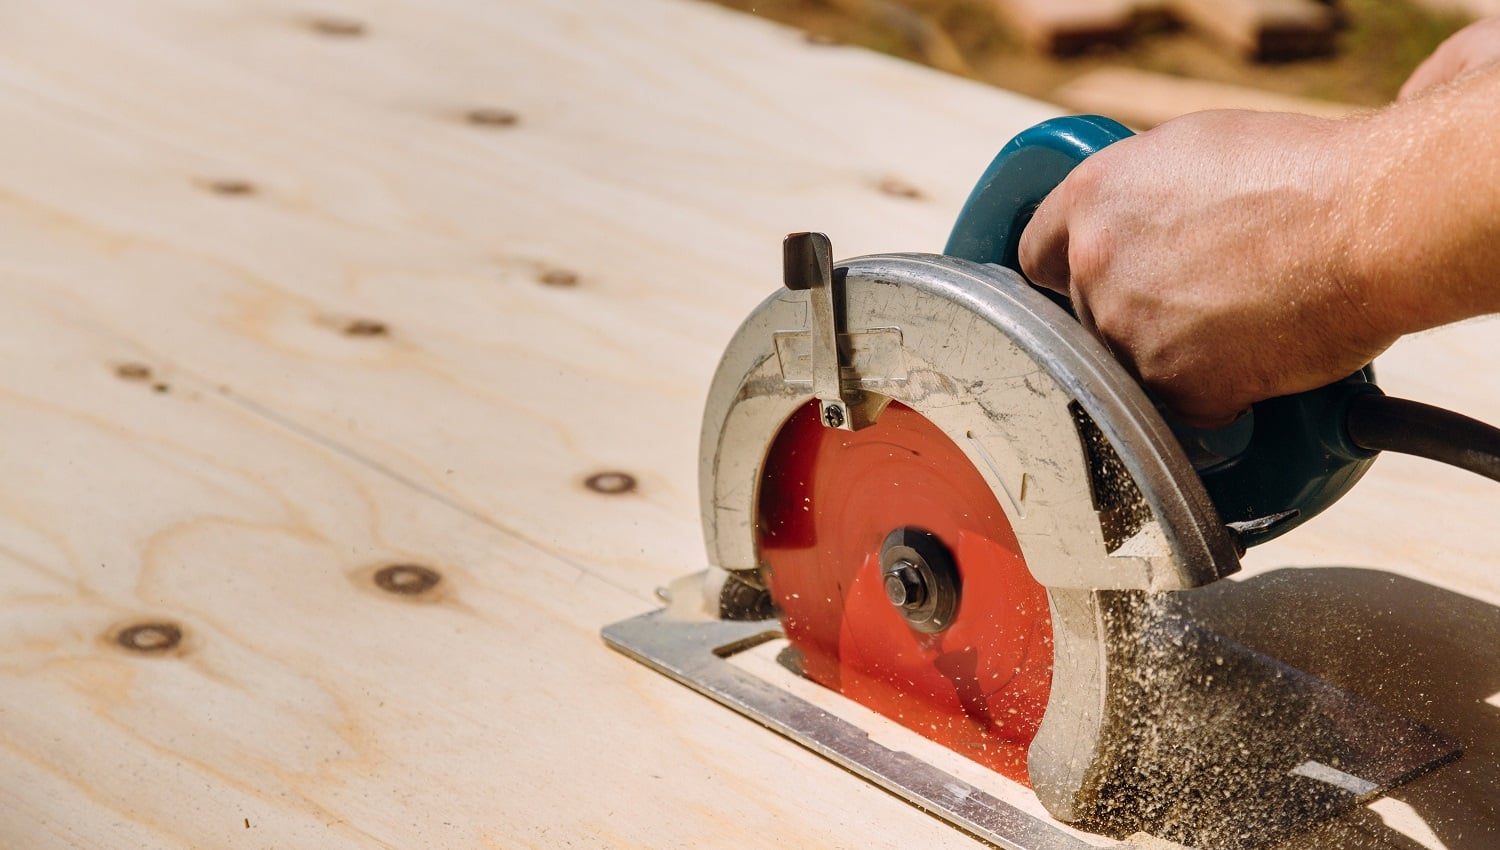 Handyman cutting plywood on hand held worm drive circular saw